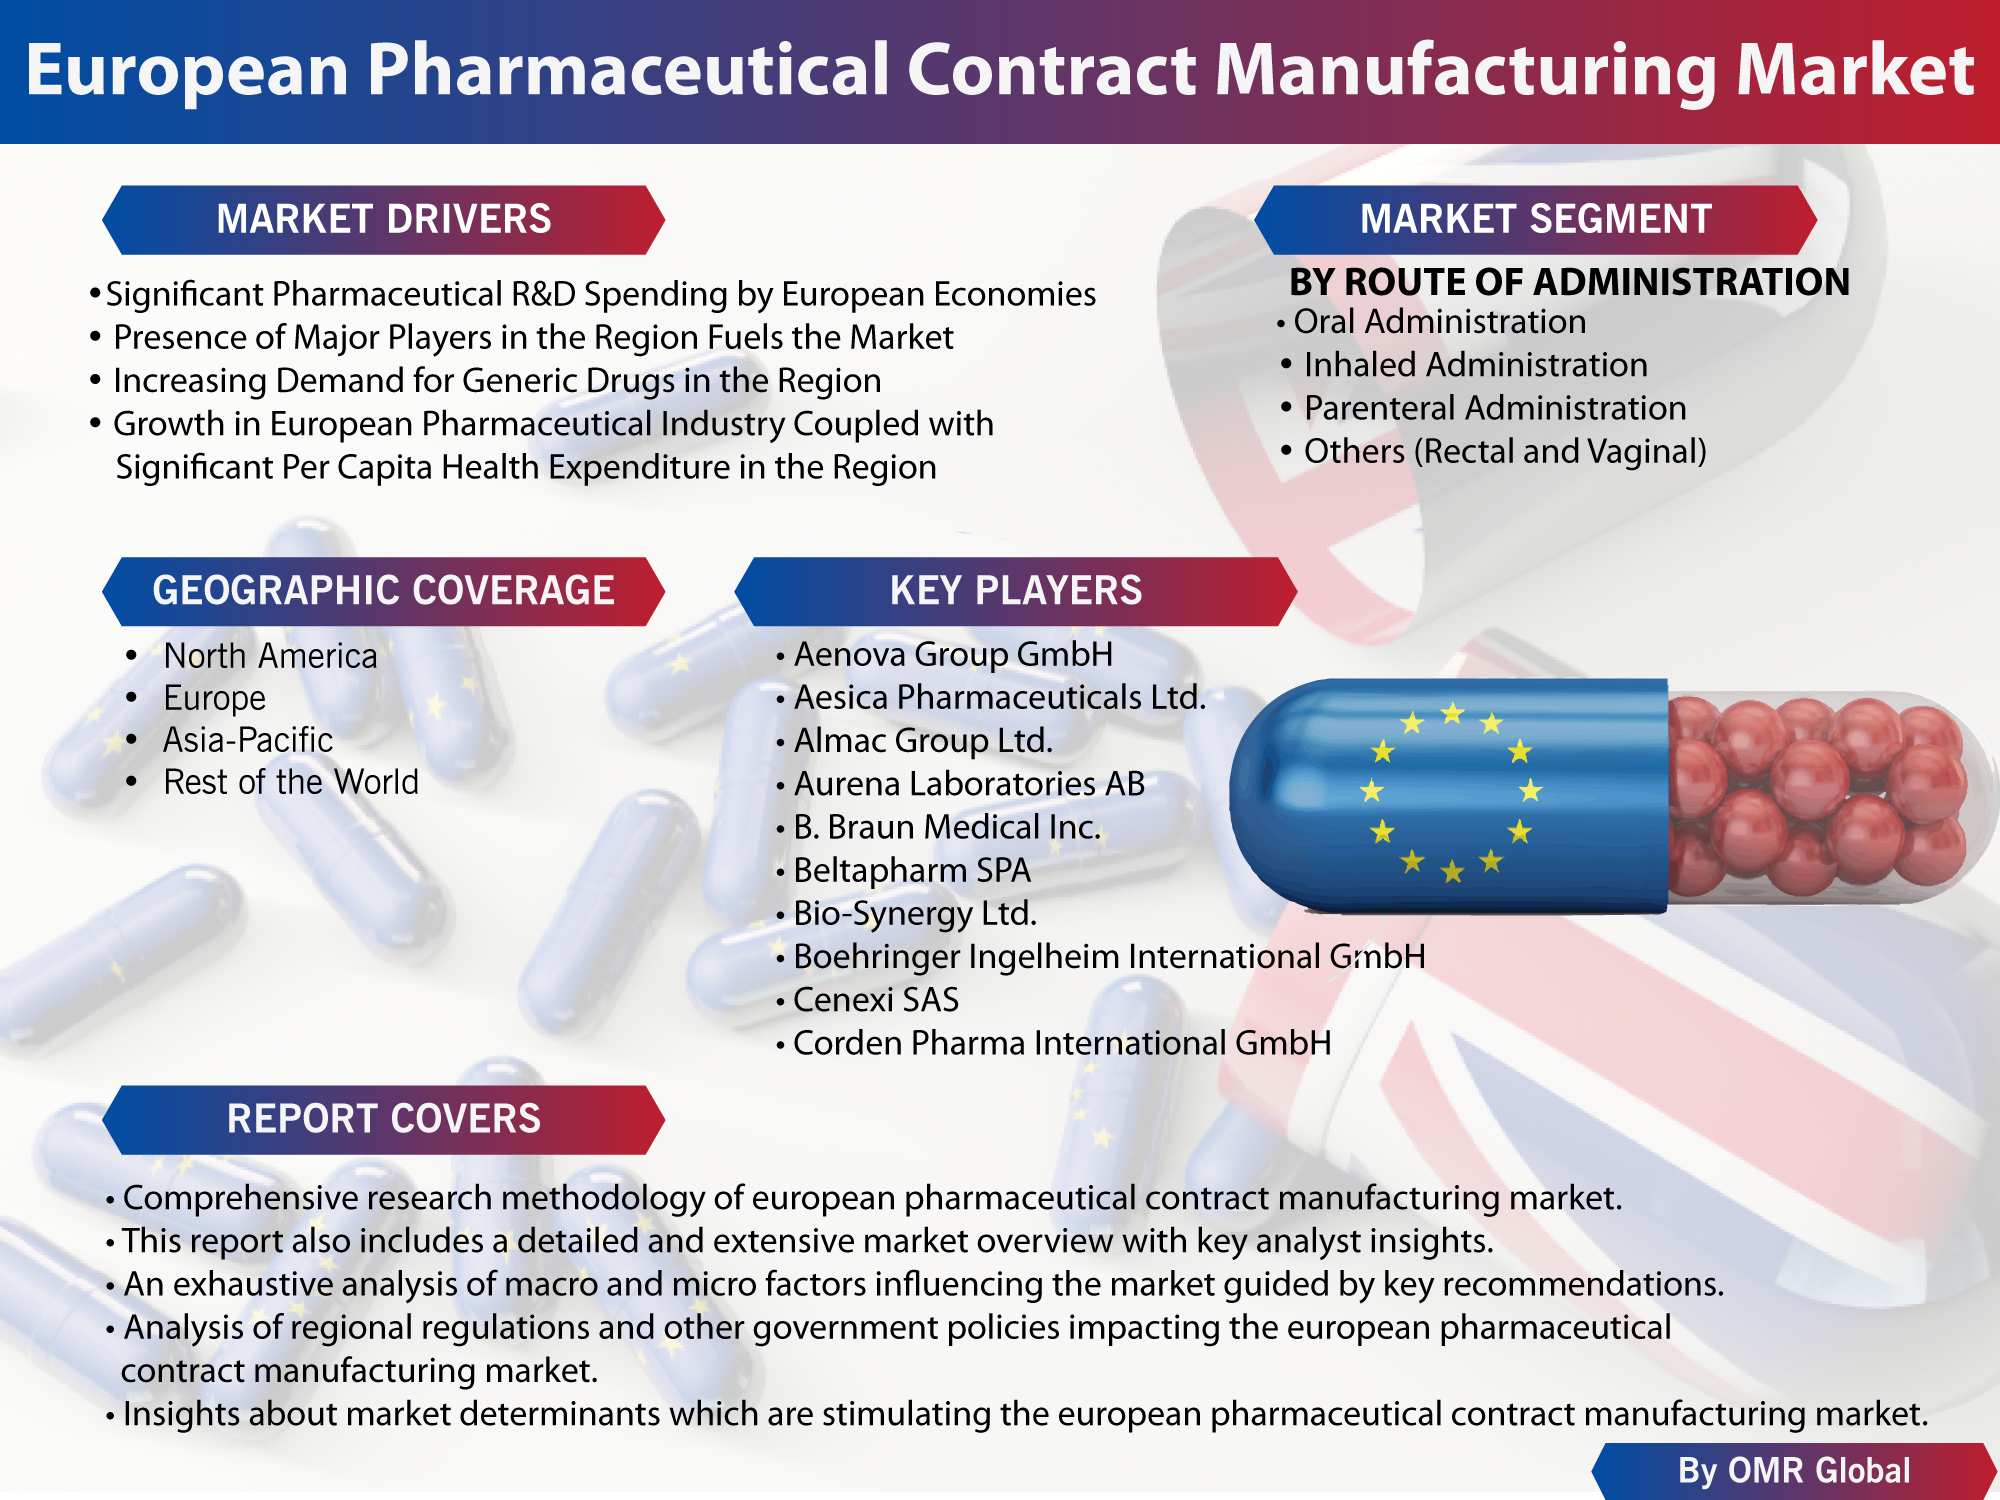 European Pharmaceutical Contract Manufacturing Market Research 2023 Pharmaceutical Marketing Medical Research